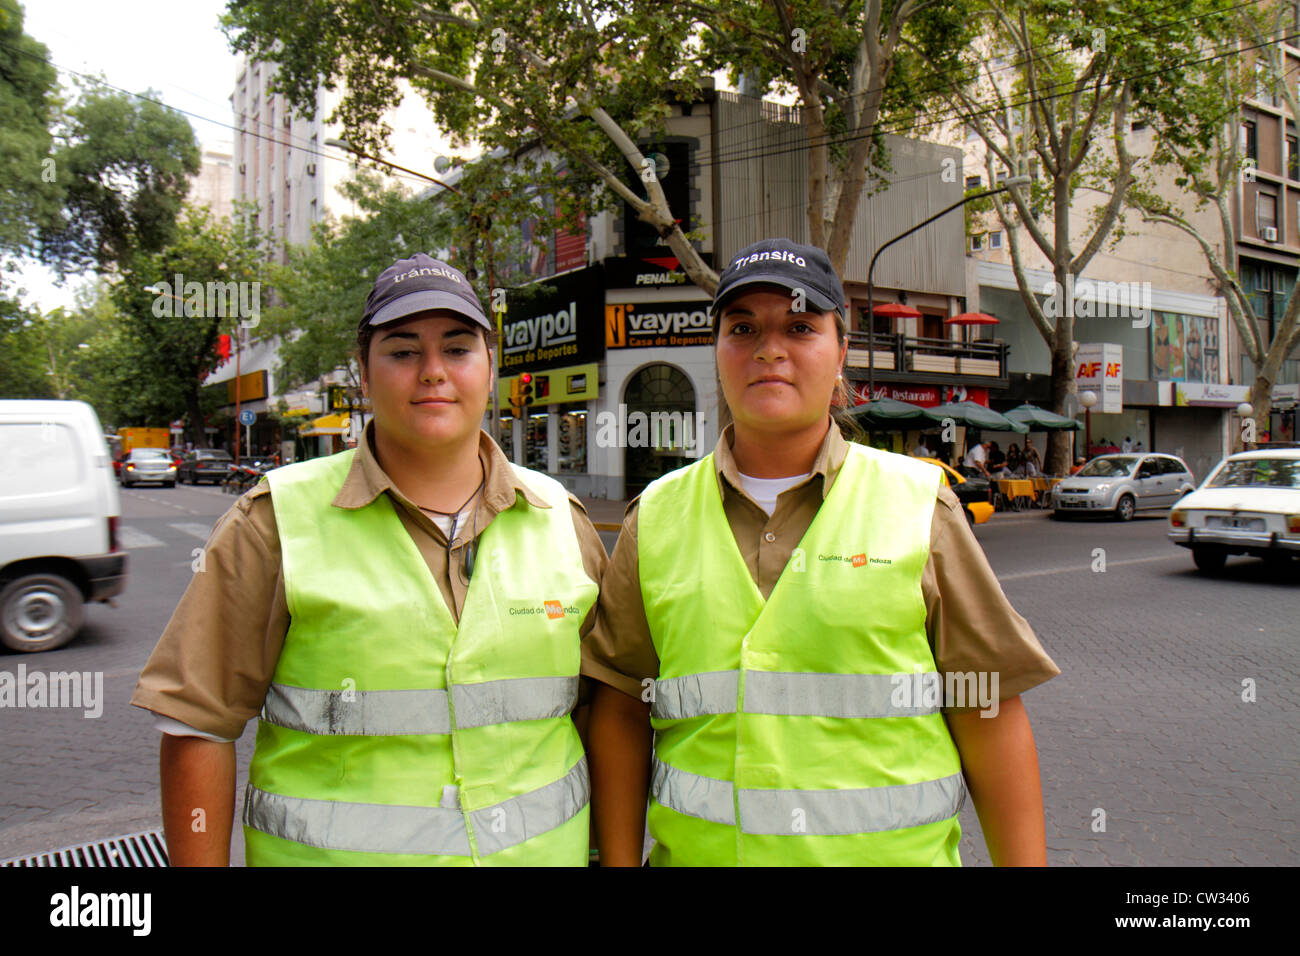 Mendoza Argentina Avenida San Martin Hispanic woman women public safety traffic agent inspector job uniform reflective Stock Photo